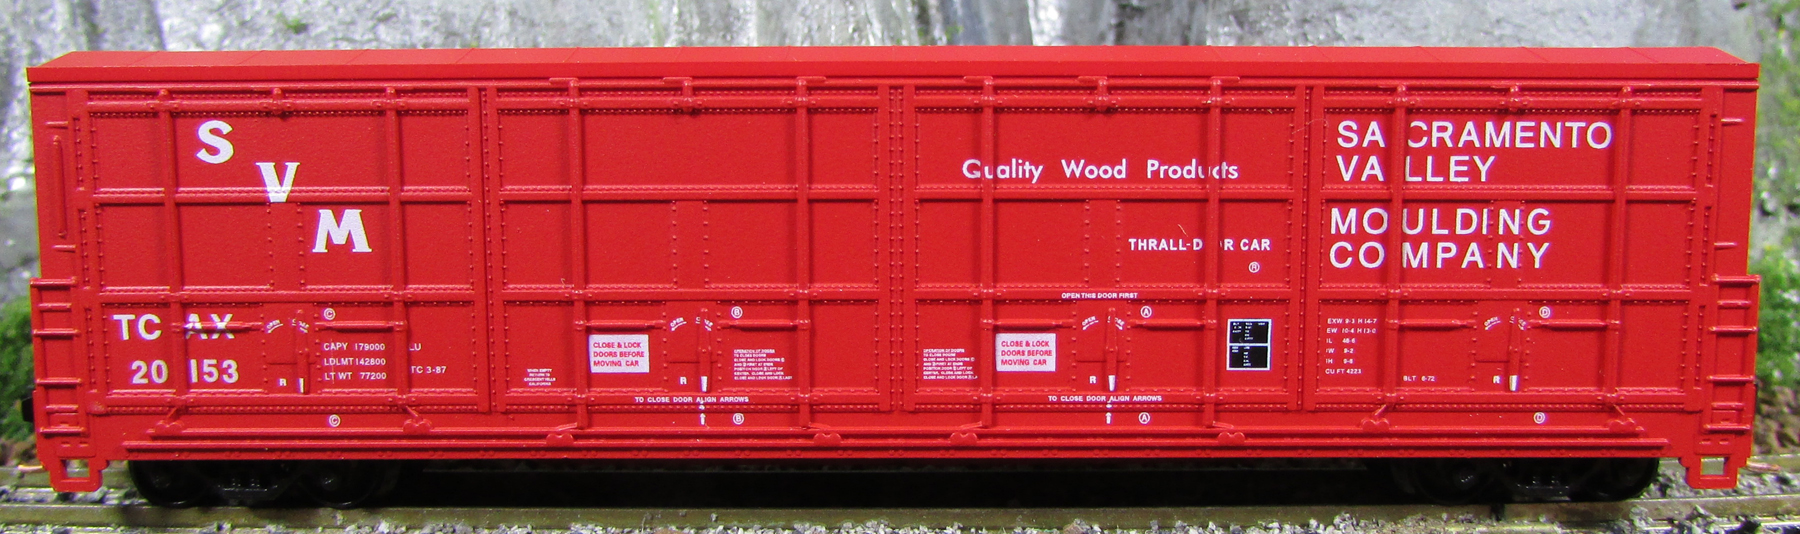 N Scale - Red Caboose - RN-17403-02 - Boxcar, 55 Foot, Thrall All-Door - Sacramento Valley Moulding - 20153